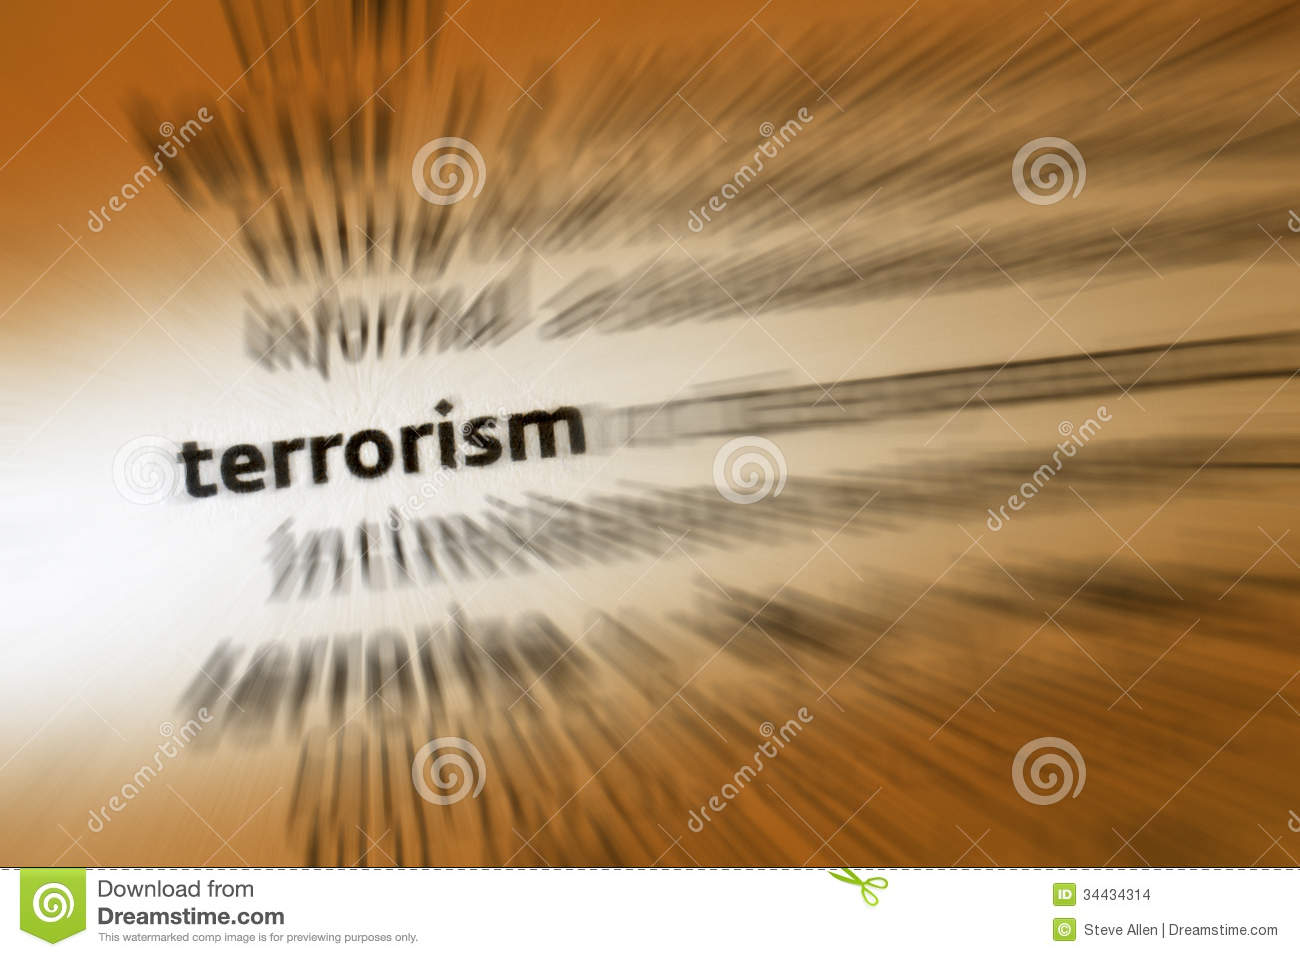 terrorism and the pursuit of god essay Trends in modern international terrorism boaz ganor  of violence in the pursuit of political change terrorism is  terrorism bakunin's god.